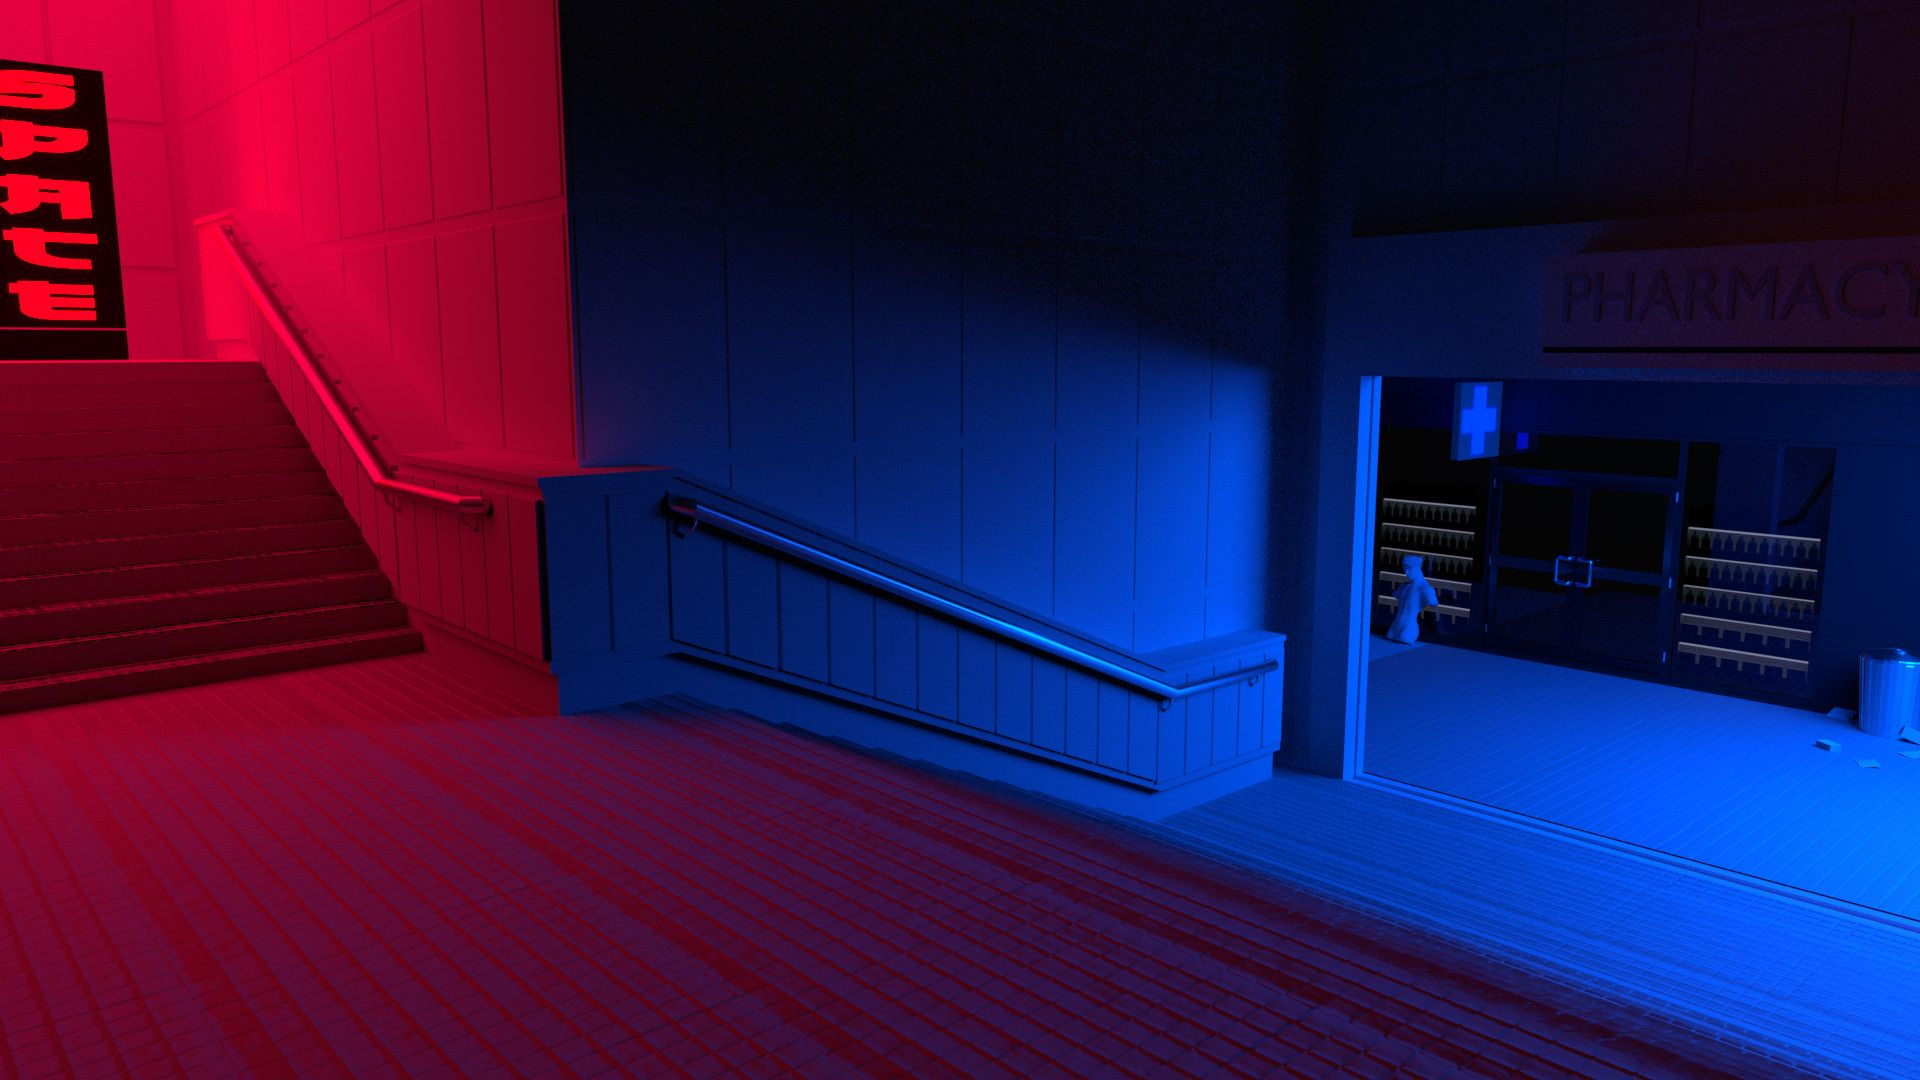 Red And Blue Wallpapers Posted By Ethan Thompson